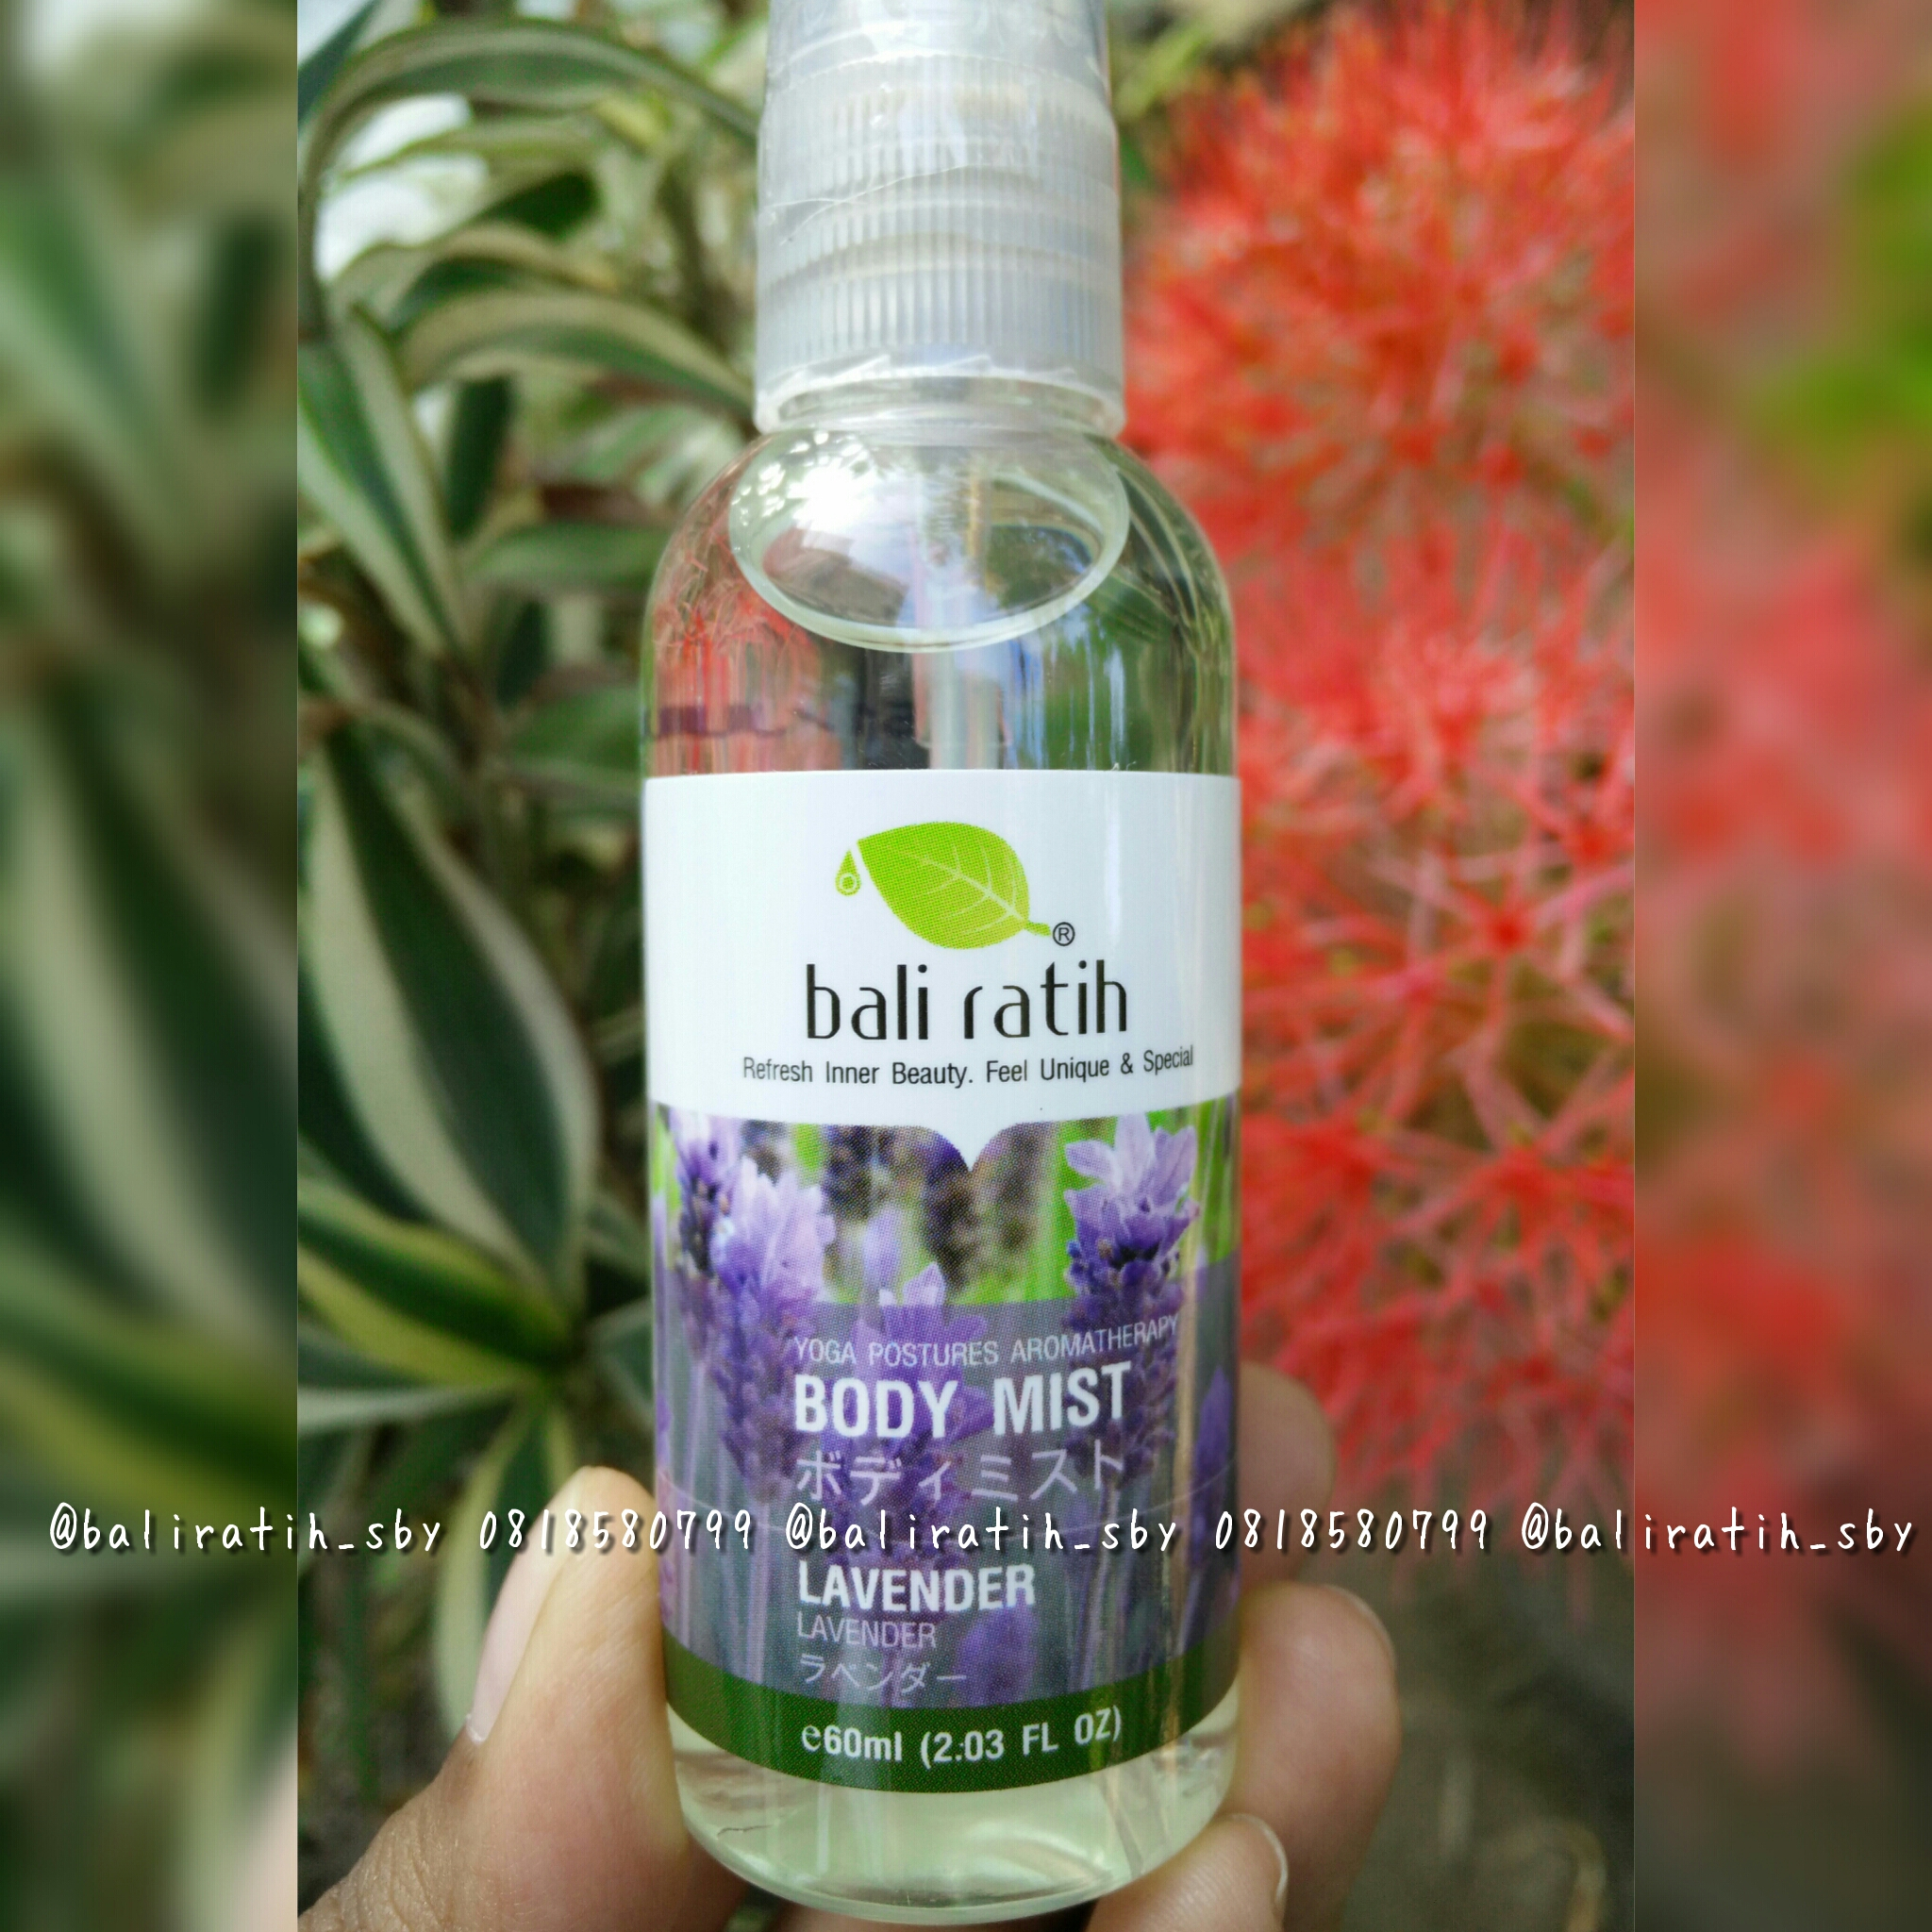 ... Paket Bali Ratih Body Mist 3pc White Musk 60 ml Source Body Mist